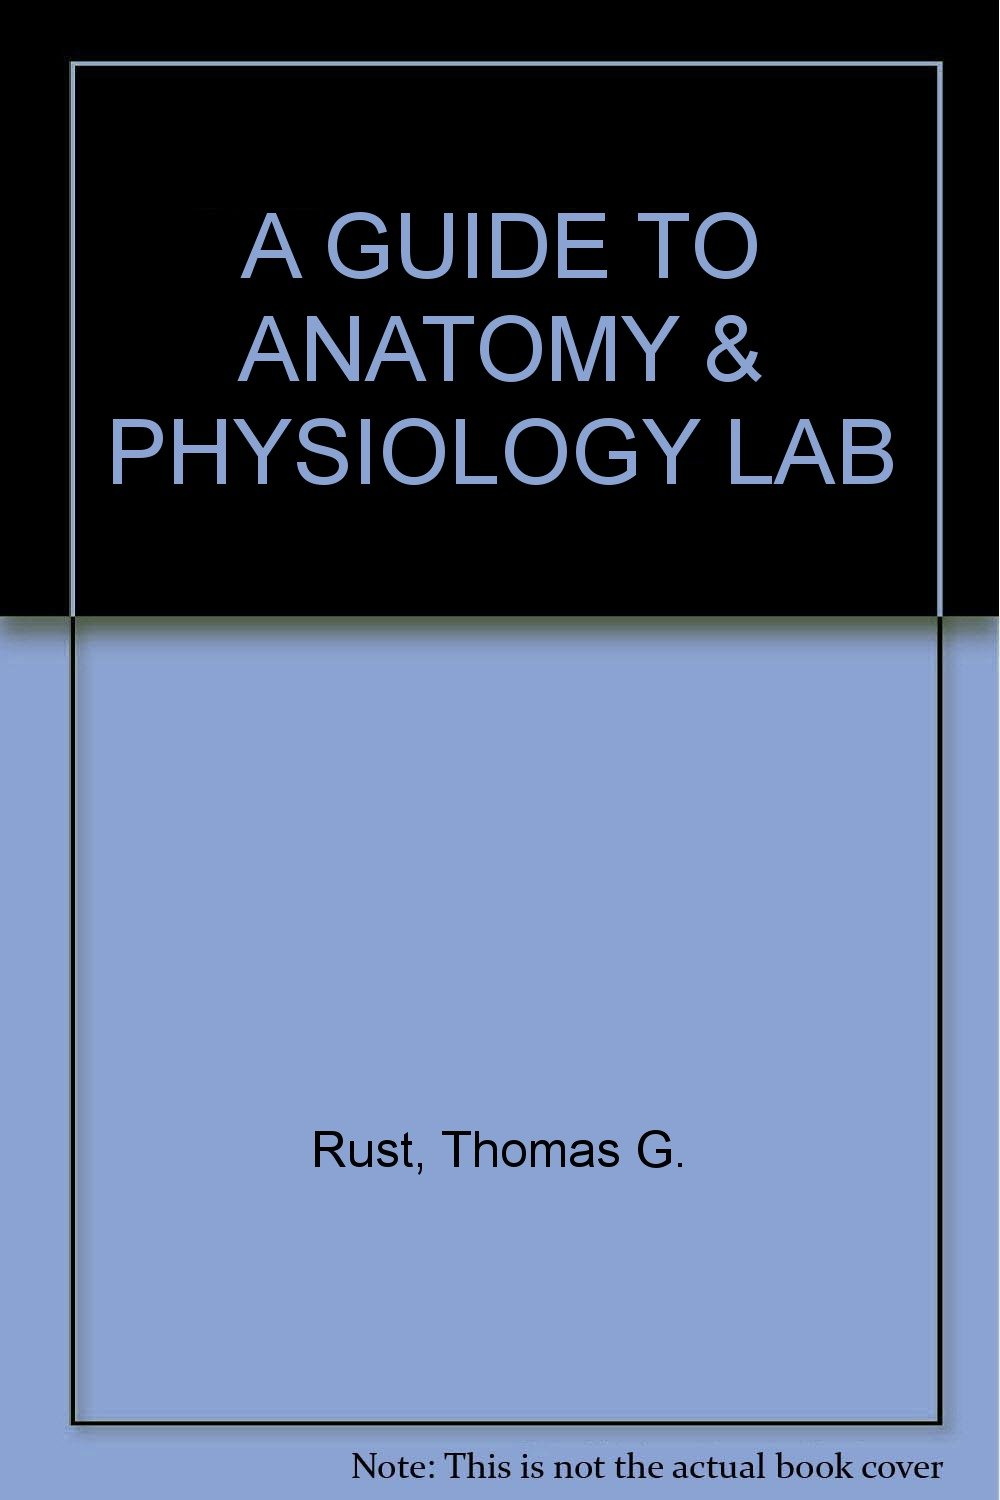 A GUIDE TO ANATOMY & PHYSIOLOGY LAB: Amazon.com: Books